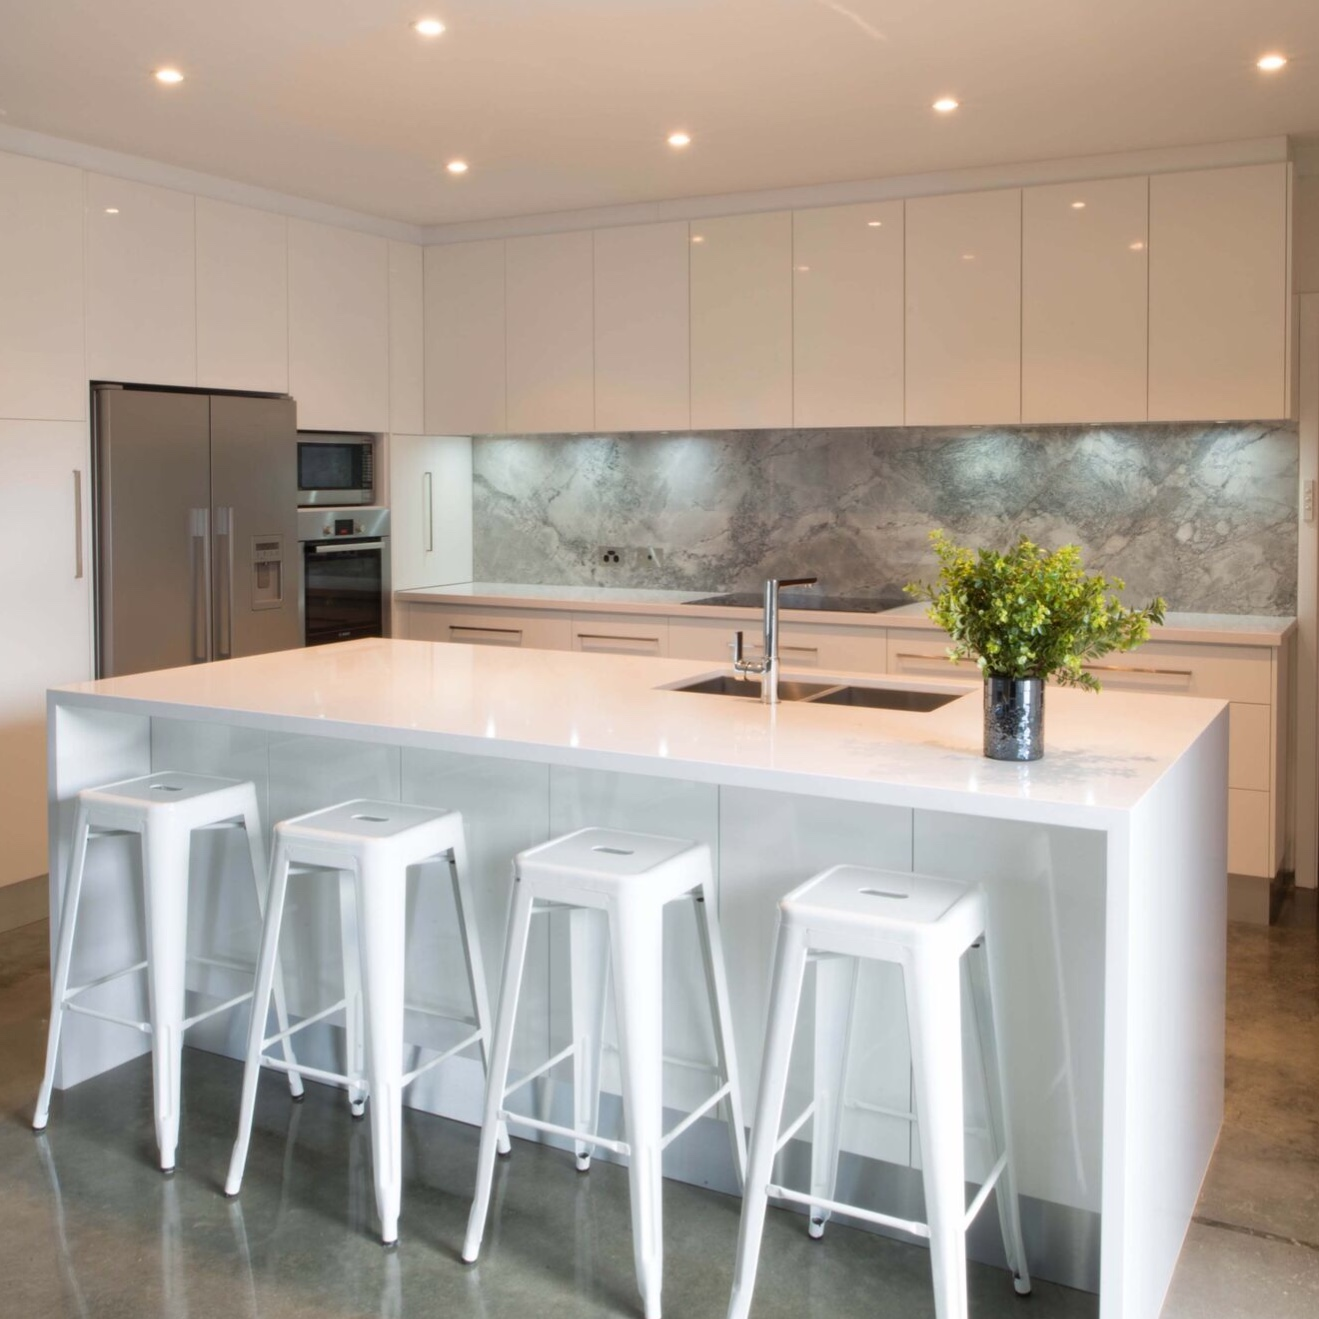 white porcelain benchtop in kitchen